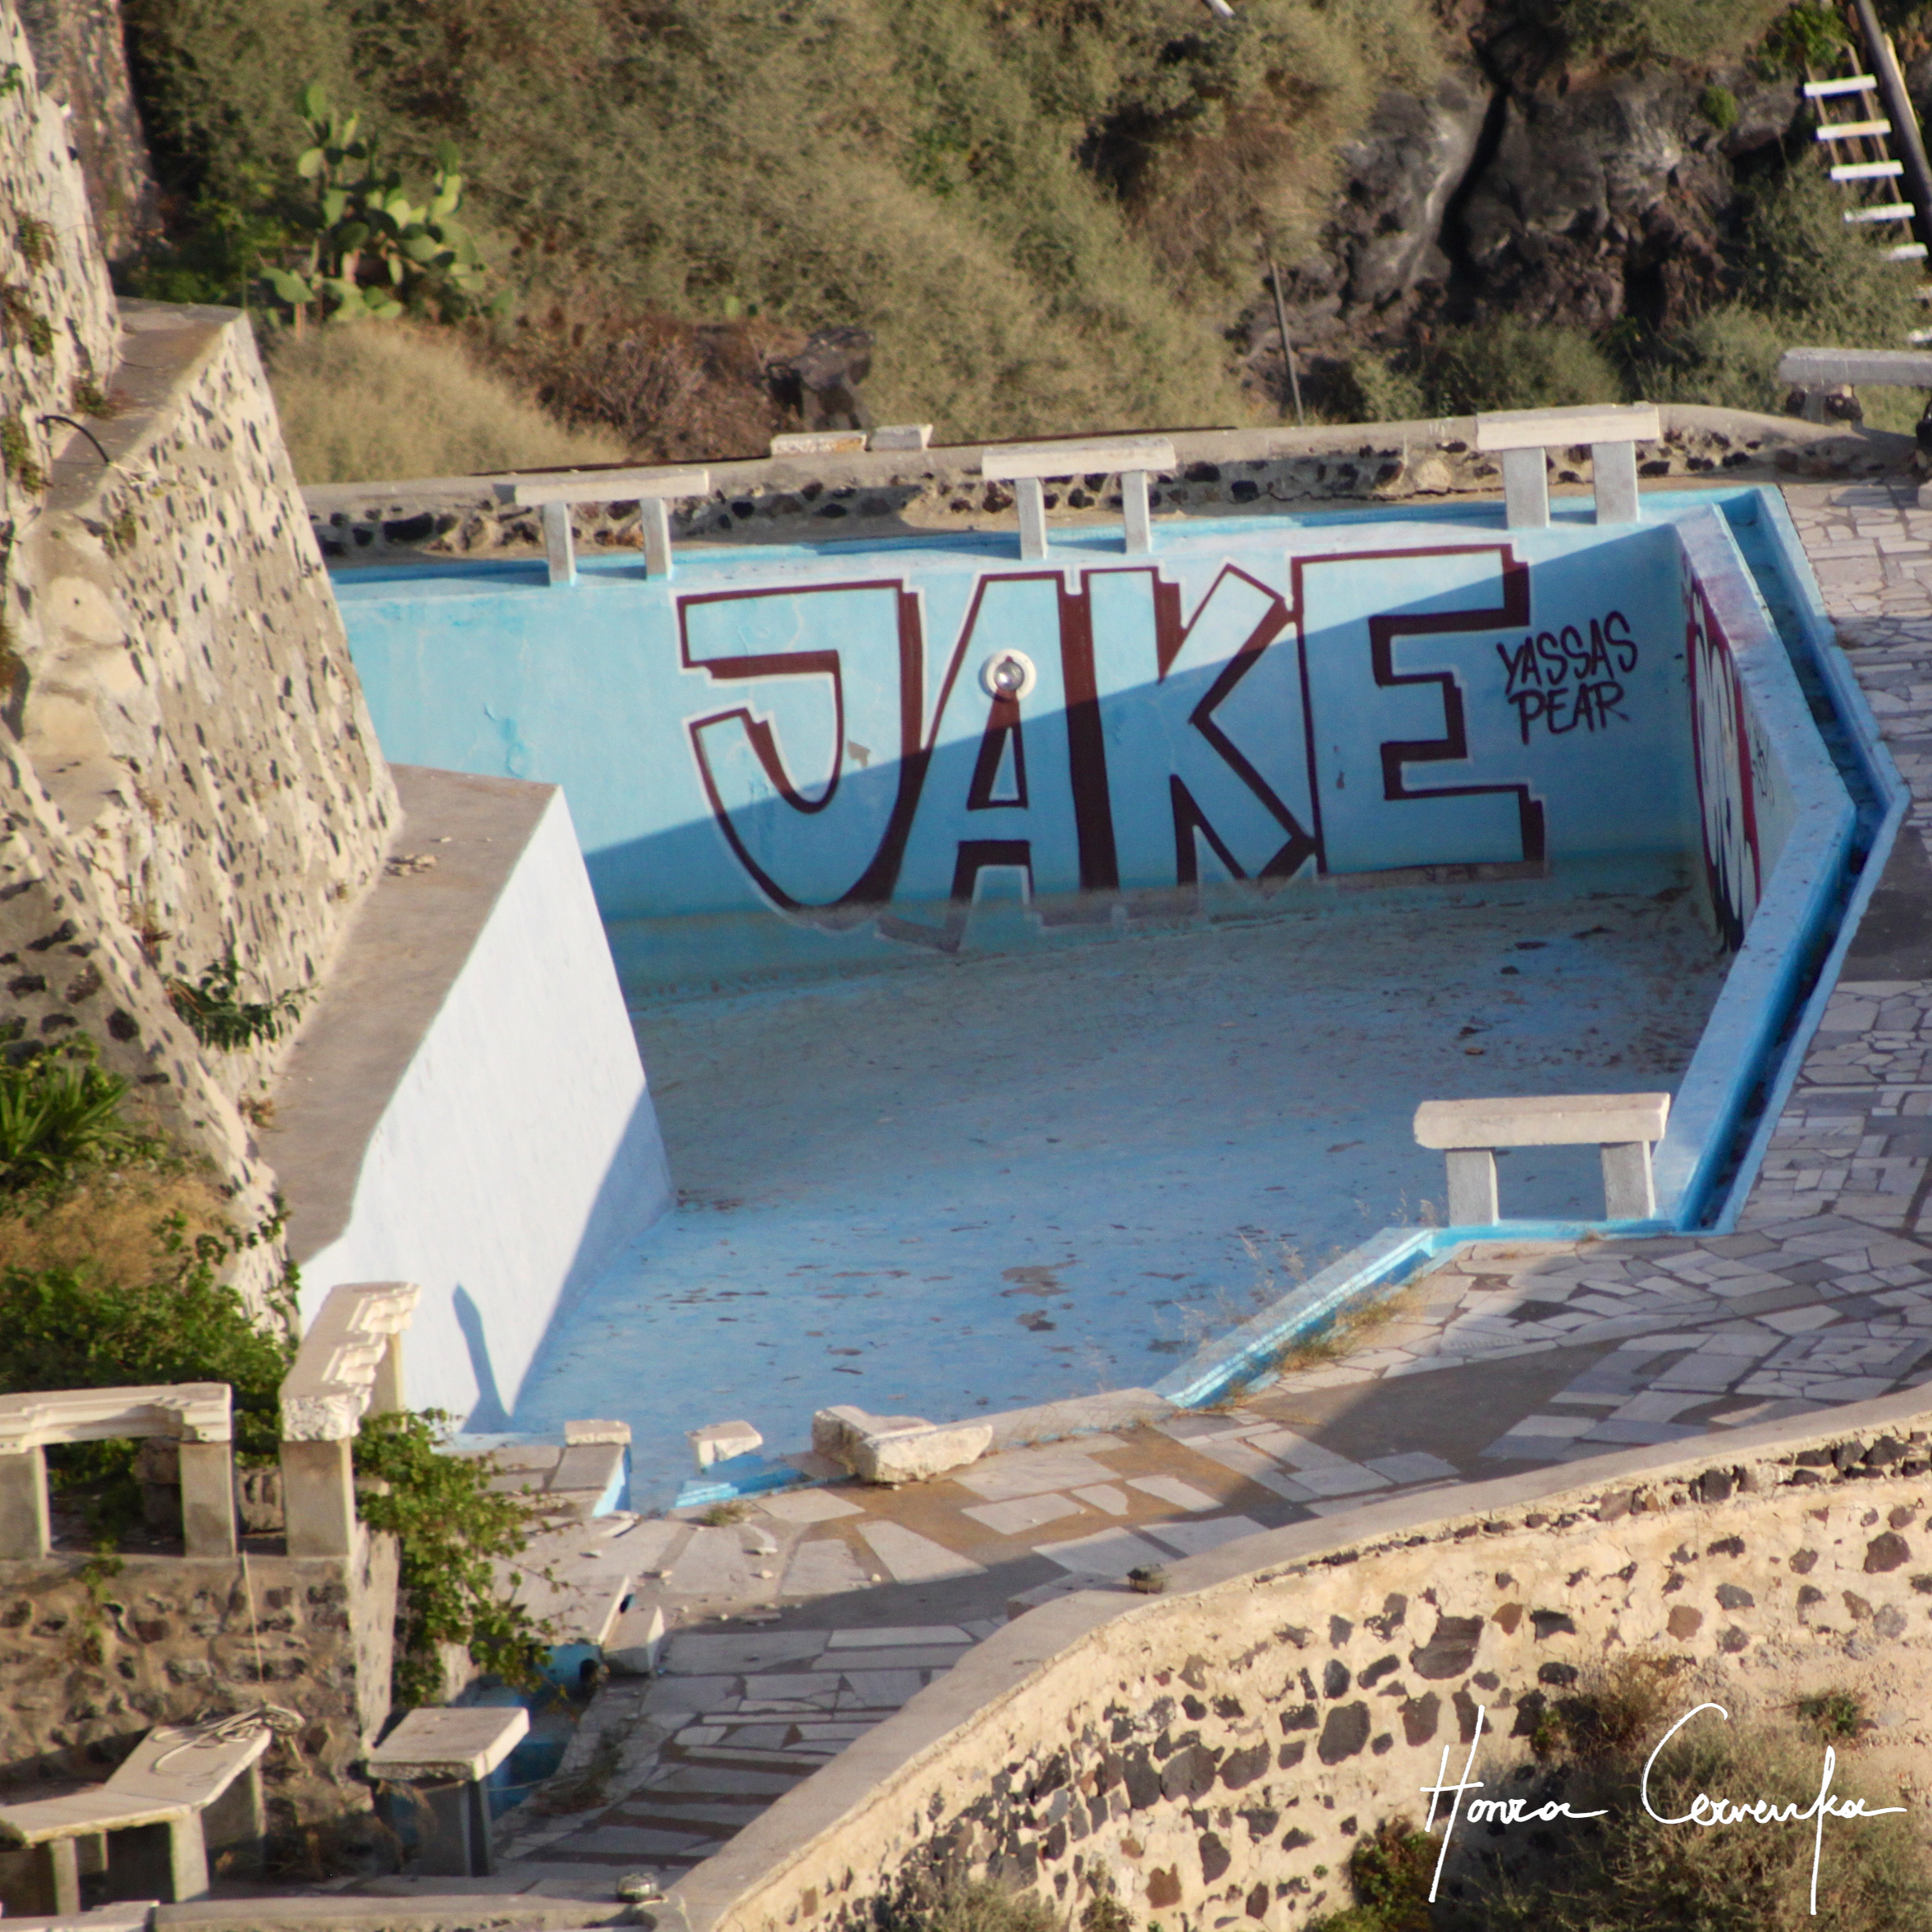 And a second bonus--one of the first sights we saw once we arrived to Thira--poor Jake hasn't swam for a while I guess